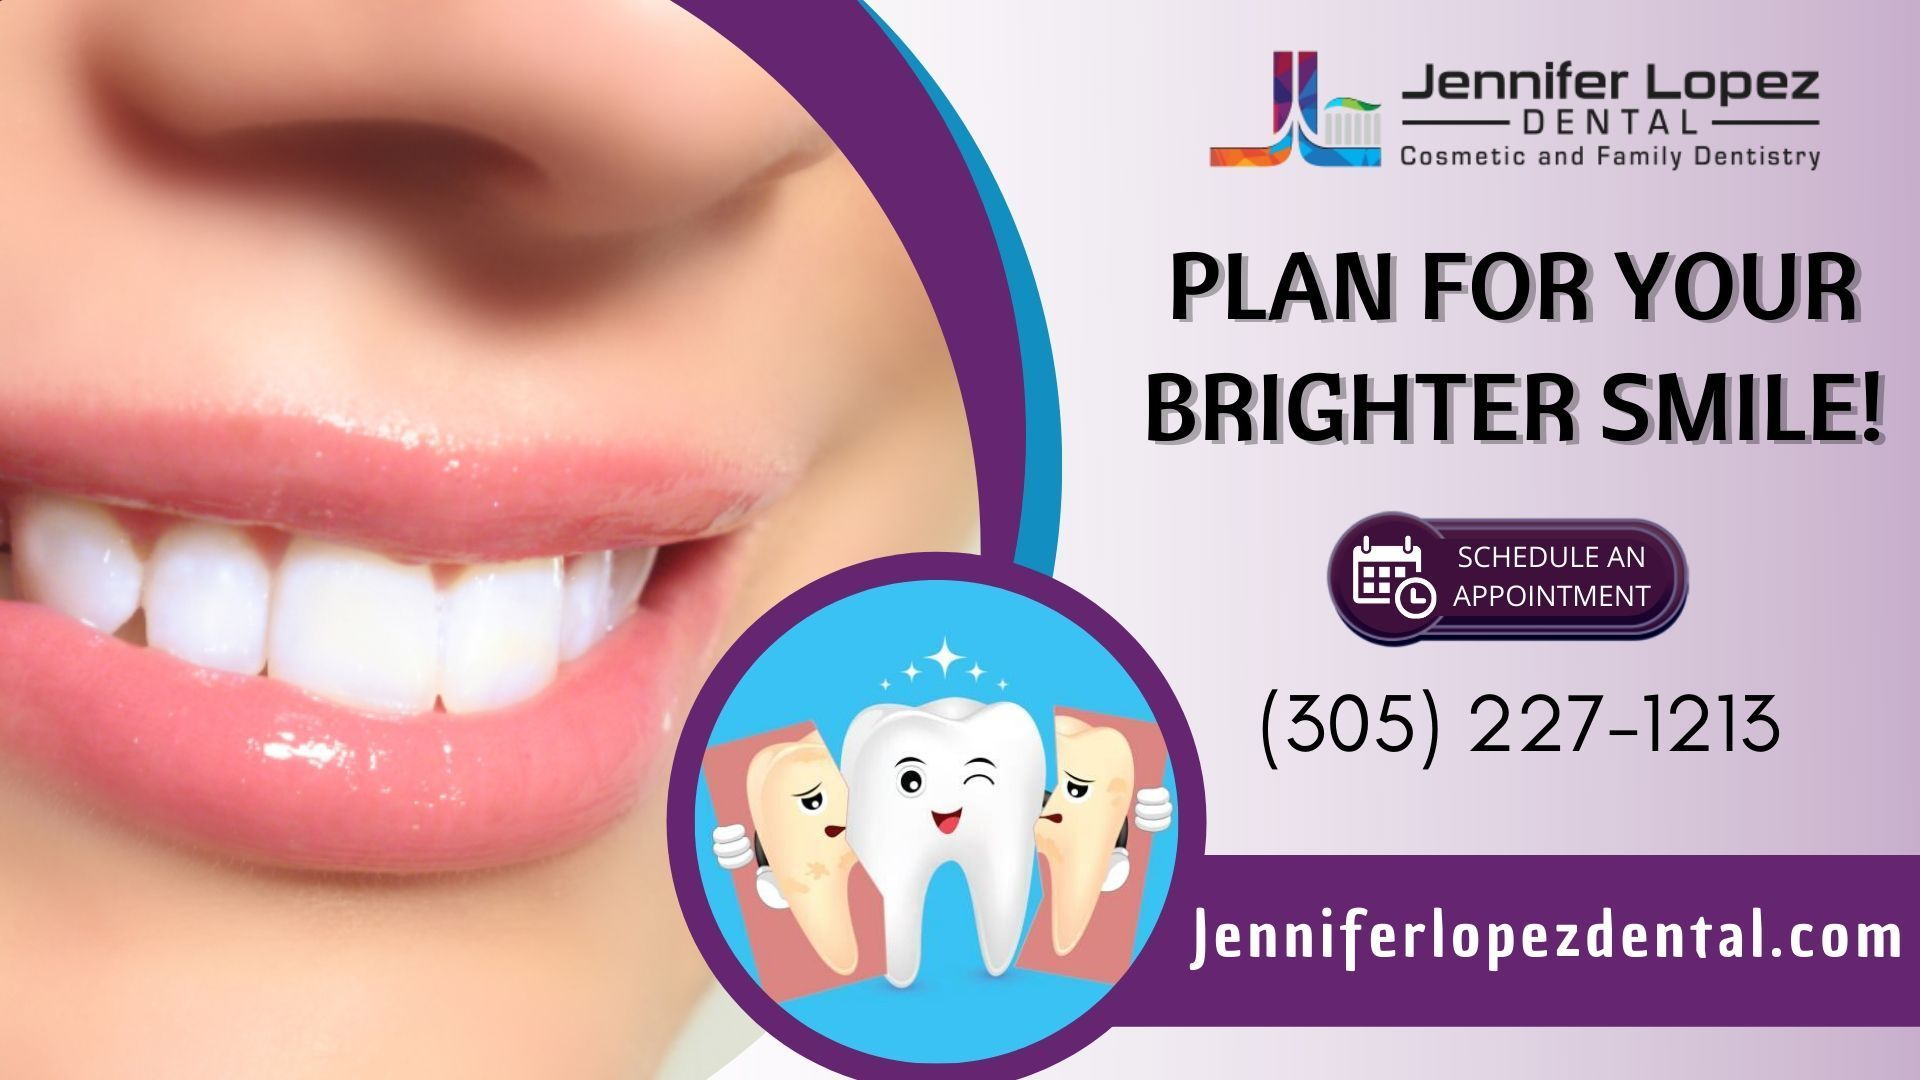 Enhance your smile with cosmetic dentistry dental